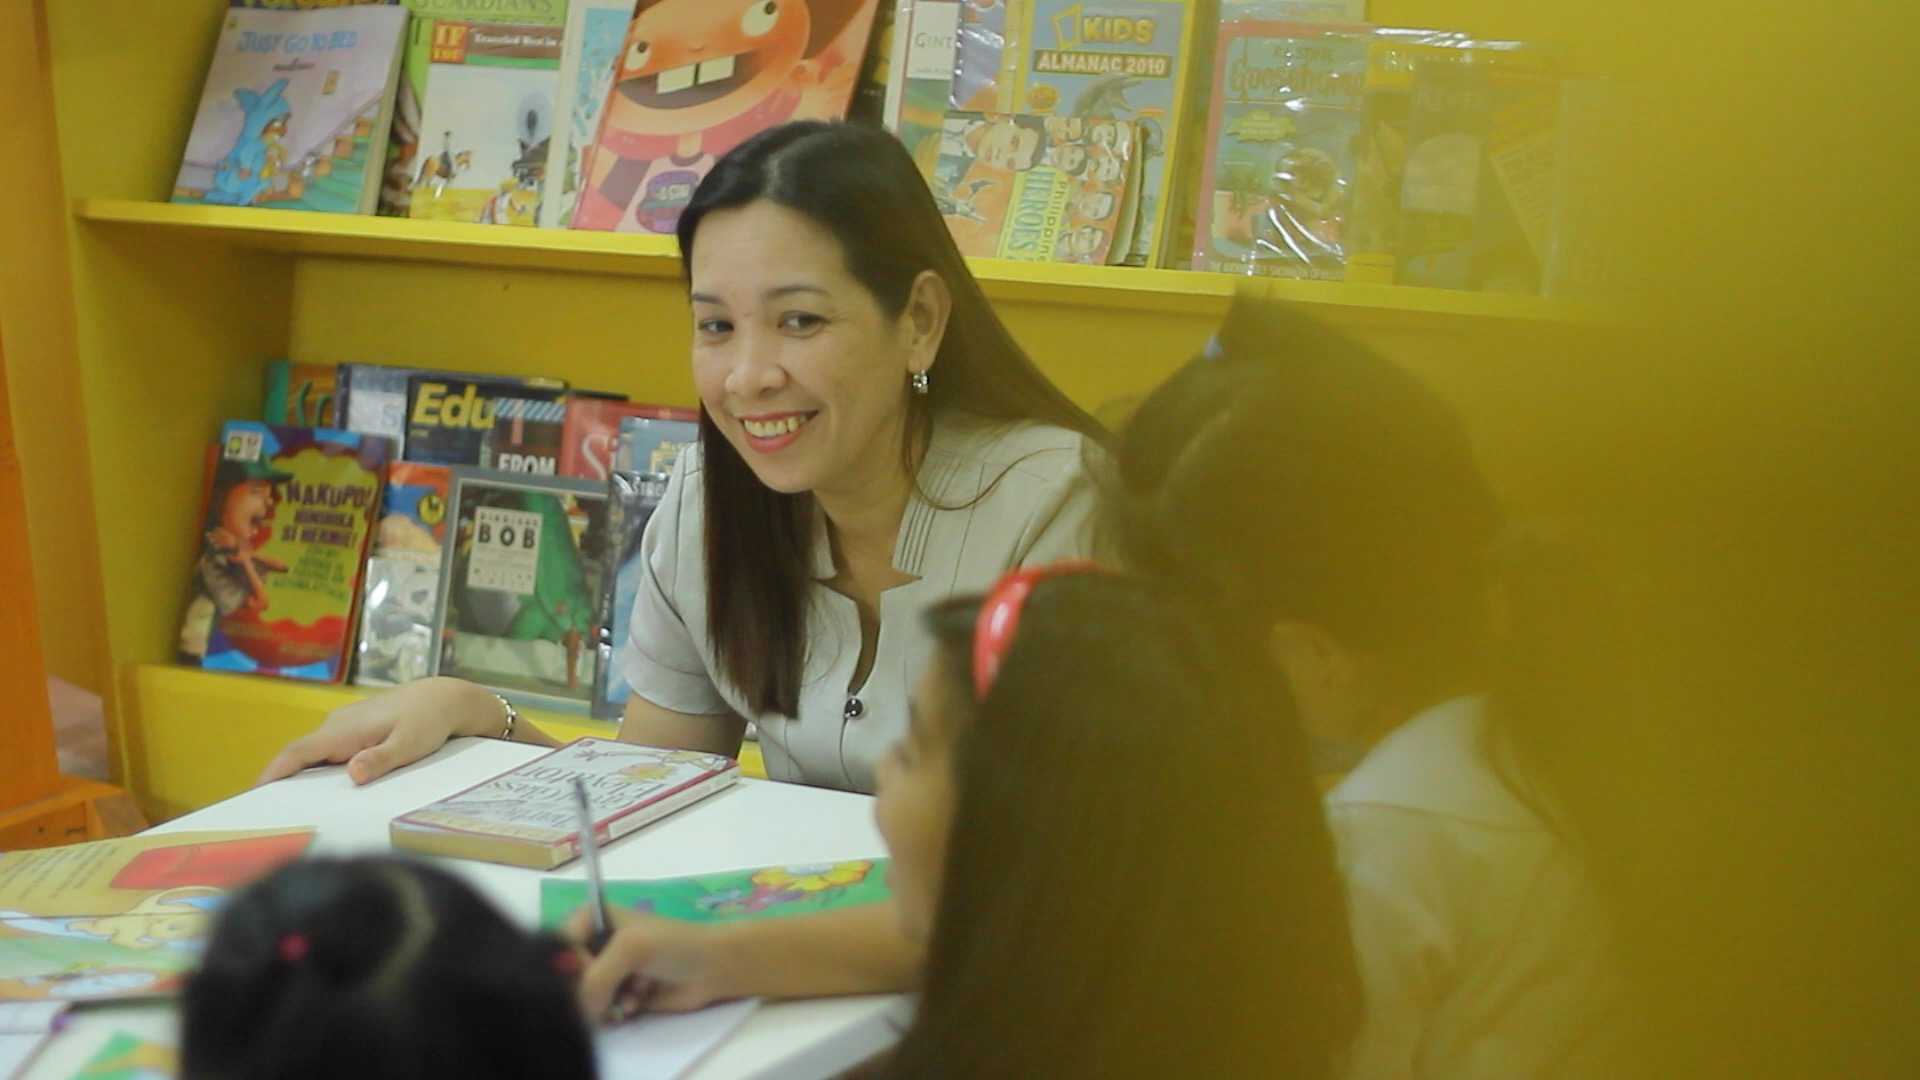 SCIENCE MADE FUN. A teacher in a barrio in Tagaytay City makes learning science fun to students. Photo by Vee Salazar/Rappler